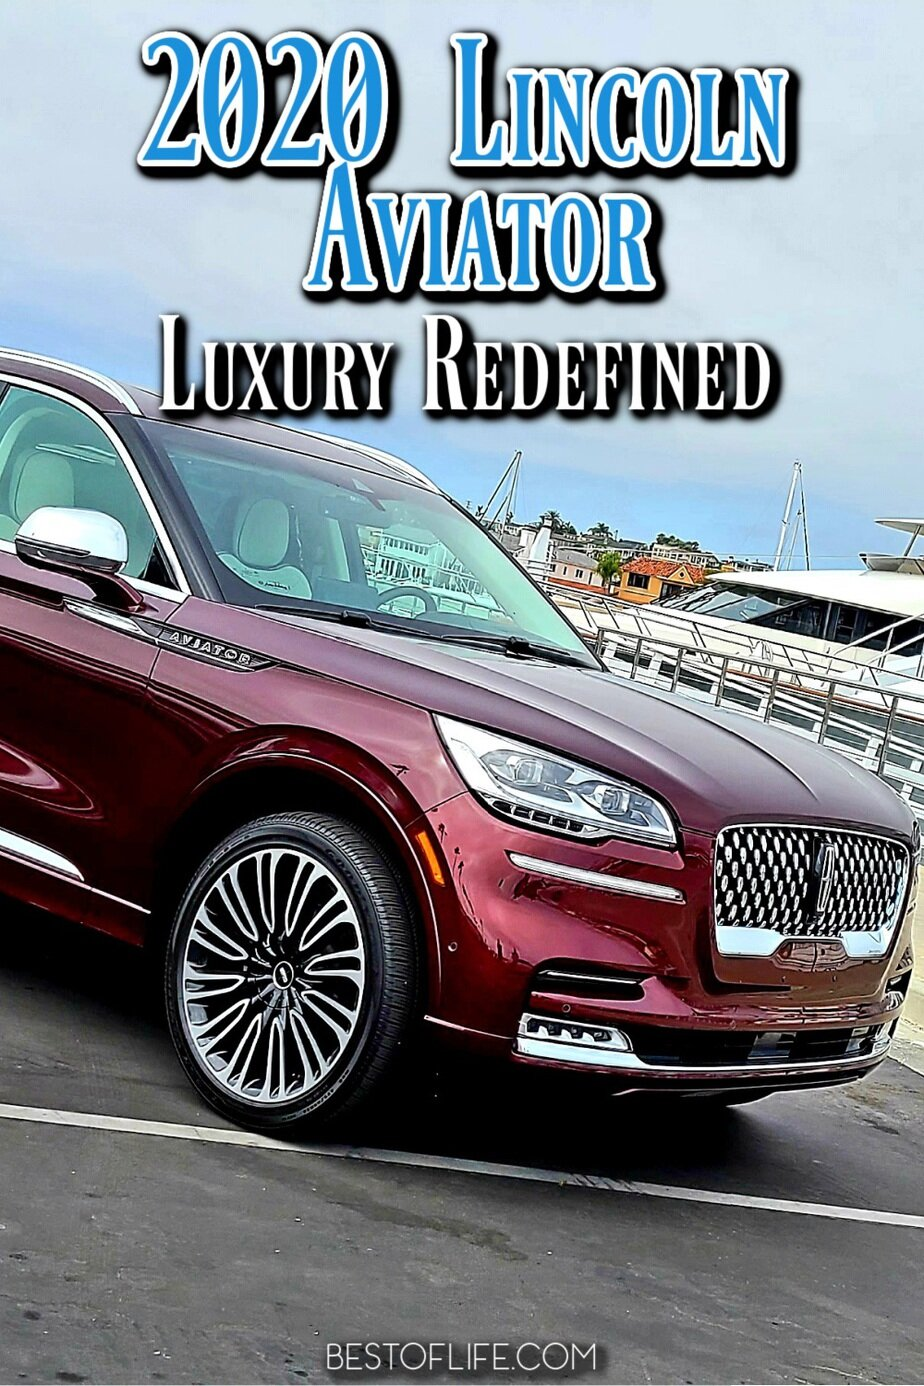 The 2020 Lincoln Aviator redefines luxury with an oasis of upgrades that create a driver sanctuary. Cars for Parents | Luxury Living | Luxury Lifestyle | Car Reviews | Best of Life | Revel Audio via @thebestoflife